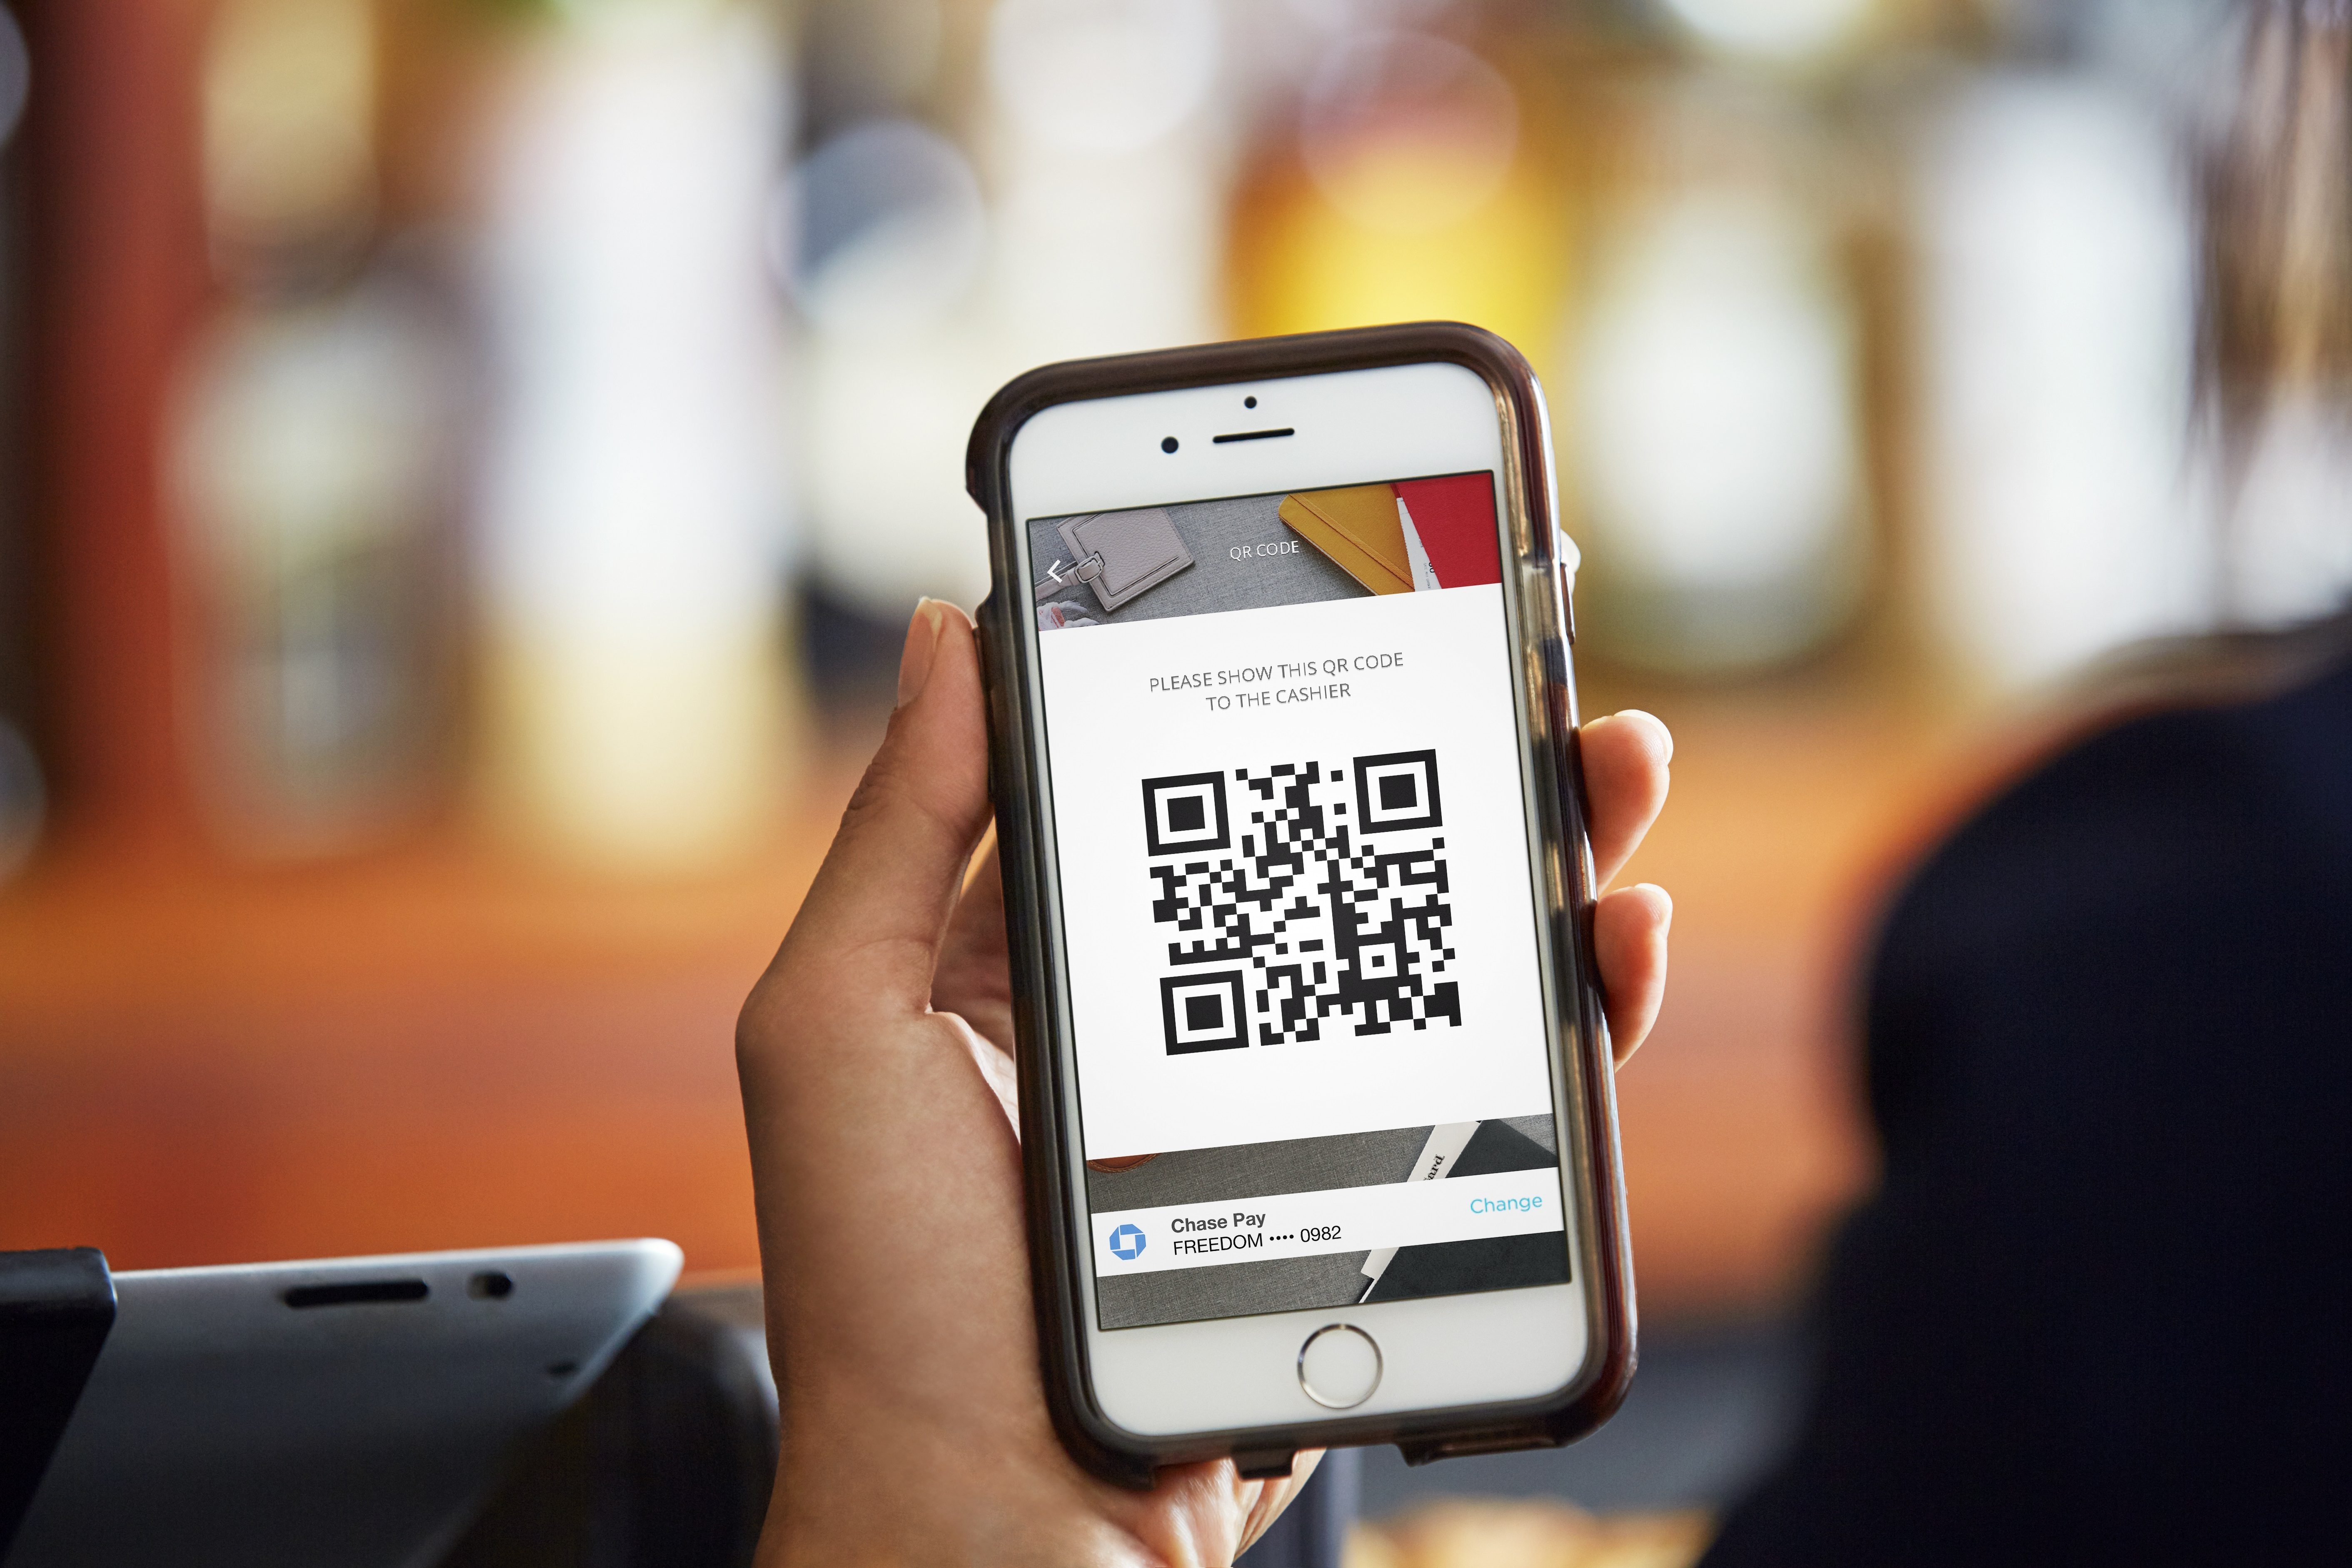 The Problem With Chase Pay, The Bank's Forthcoming Apple Pay